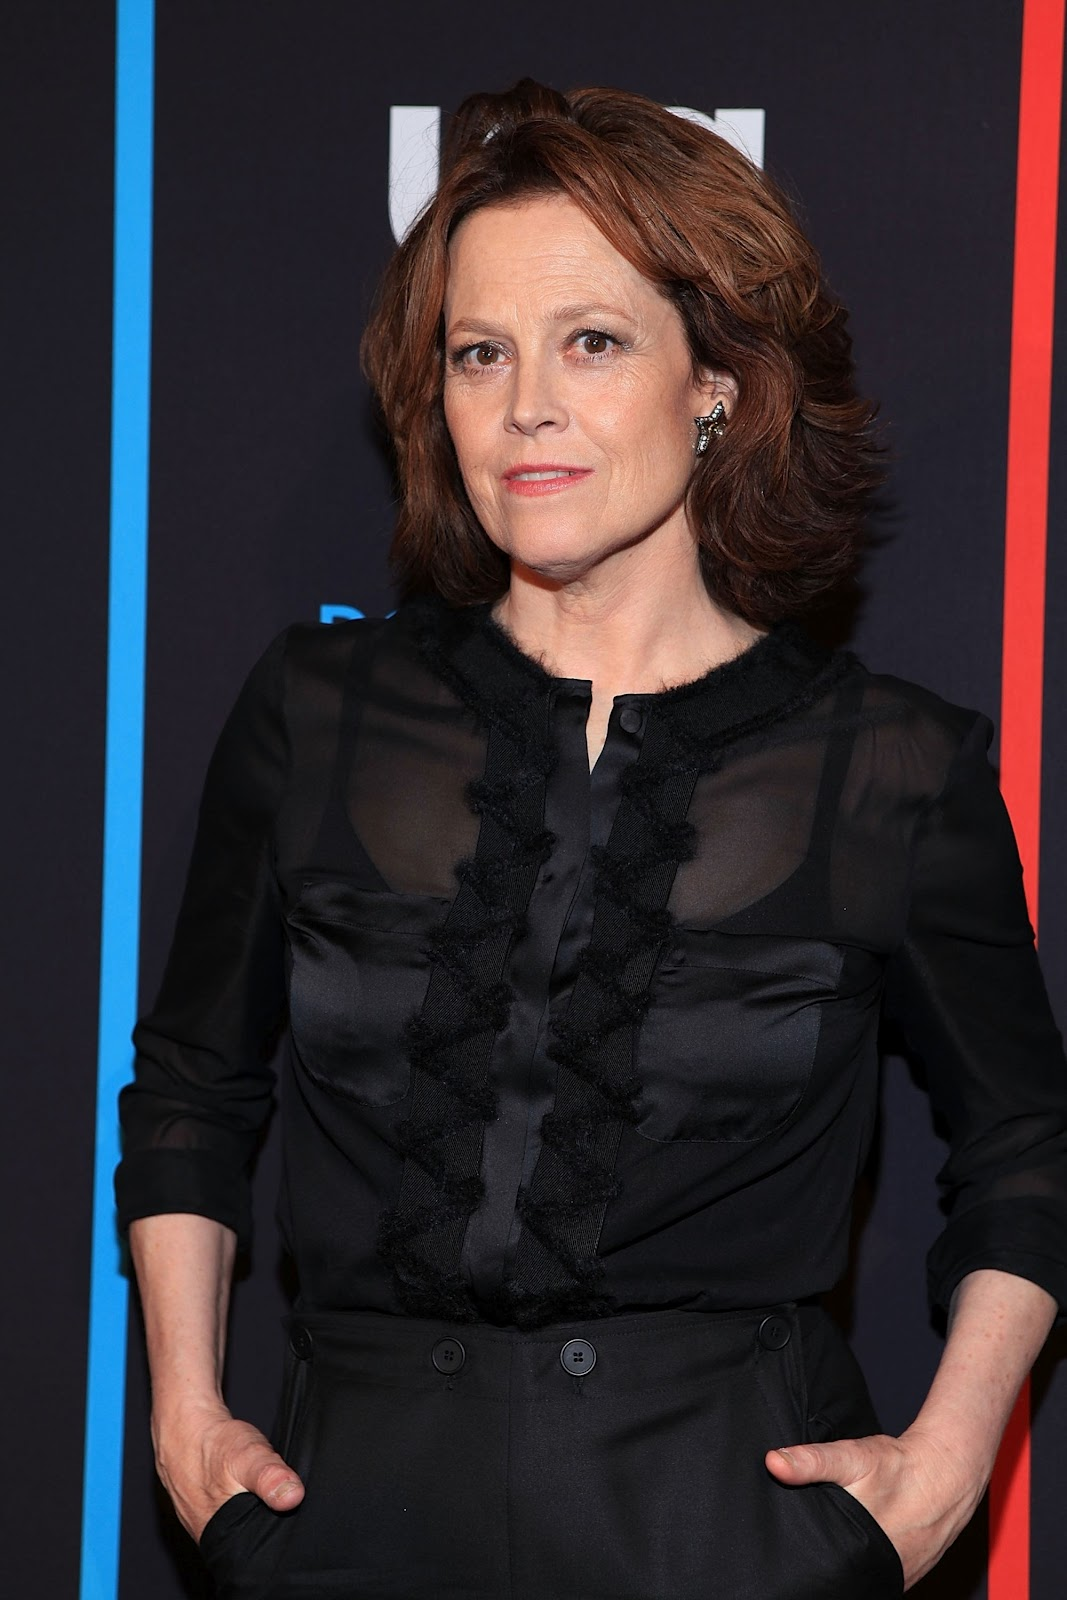 Ladies in Satin Blouses: sigourney weaver - various pictures